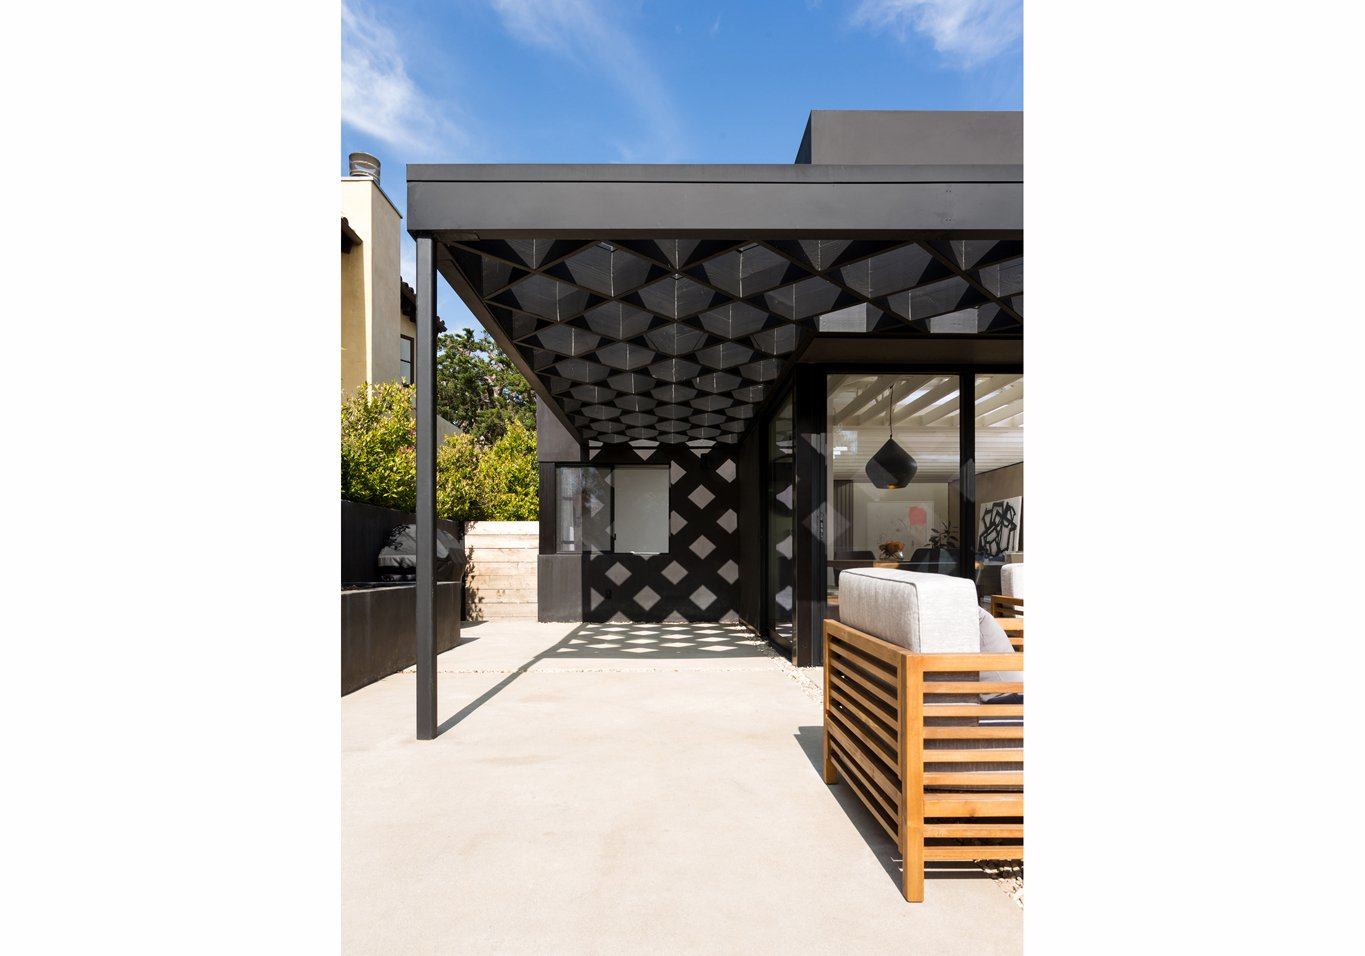 Outdoor, Hardscapes, Side Yard, Shrubs, Walkways, Wood, Concrete, Decomposed Granite, Horizontal, Wood, Landscape, and Planters Shadows of the pergola at rear yard patio  Outdoor Side Yard Concrete Wood Decomposed Granite Photos from Las Casas Residence